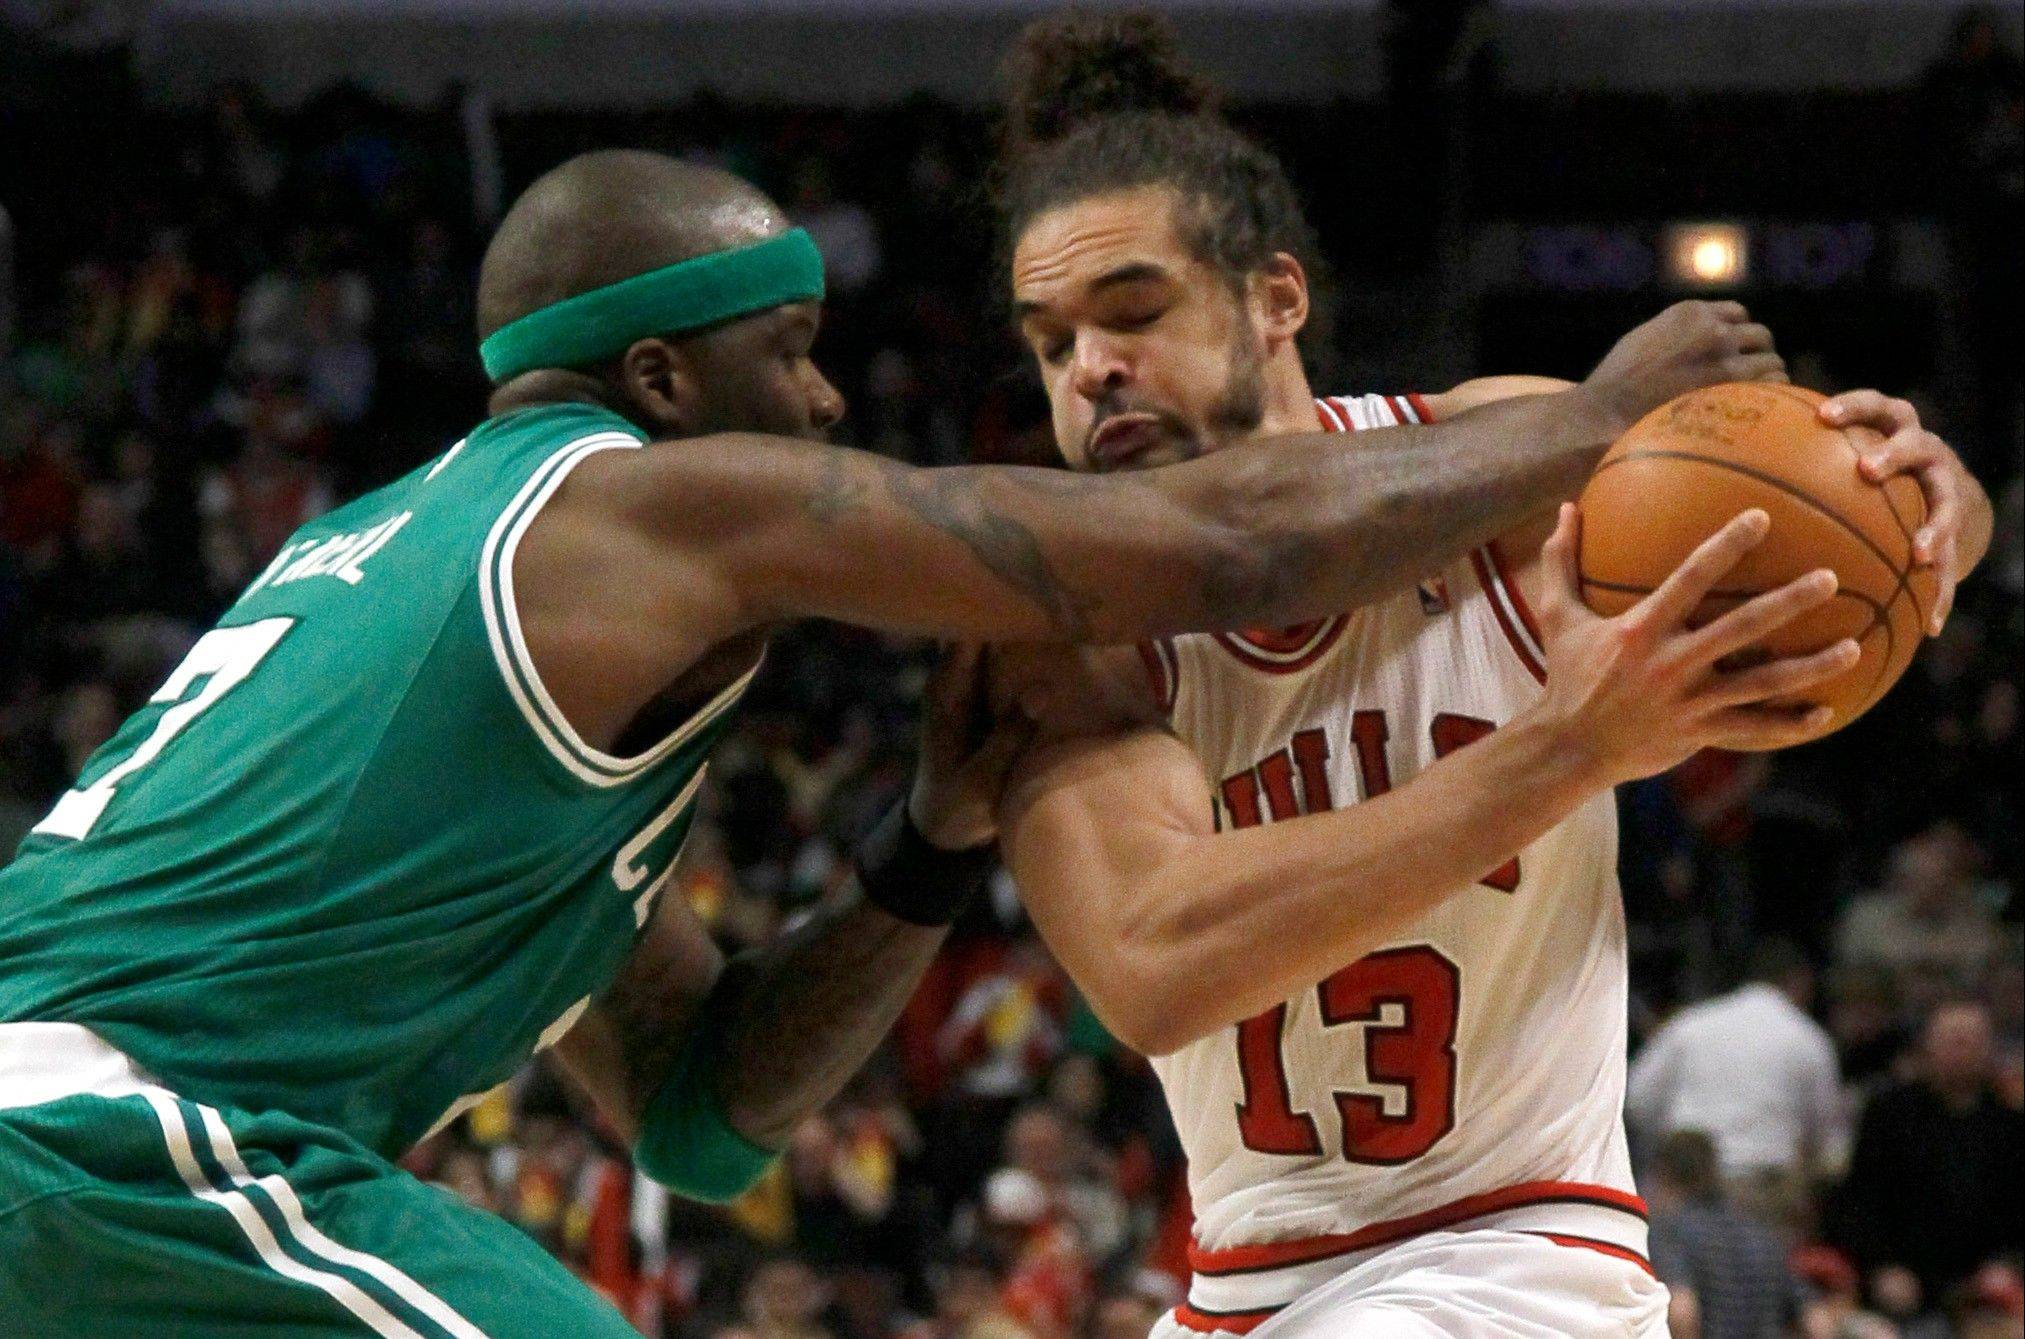 Joakim Noah has recorded four double-doubles in his last five games, averaging over 16 points and 12 rebounds for the Bulls.